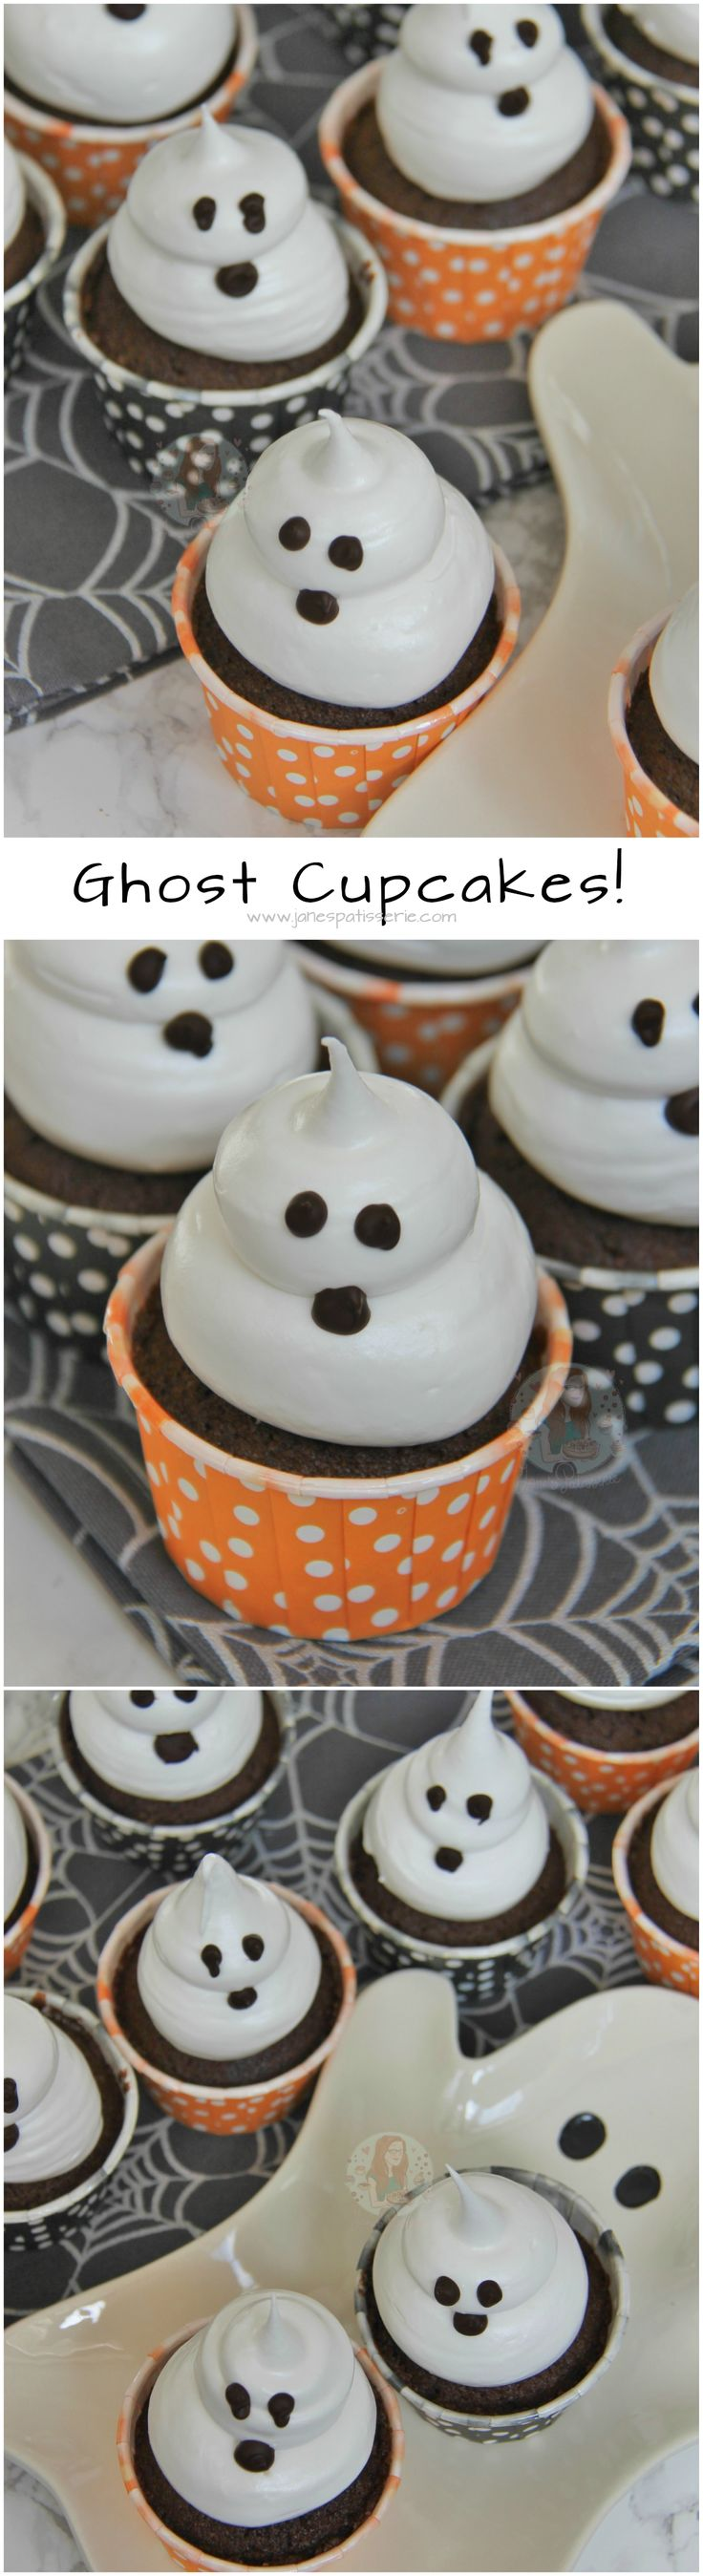 Ghost Cupcakes - Chocolatey and Delicious Chocolate Cupcakes topped with an Italian Meringue to make Cute and Spooky Ghost Cupcakes for Halloween!